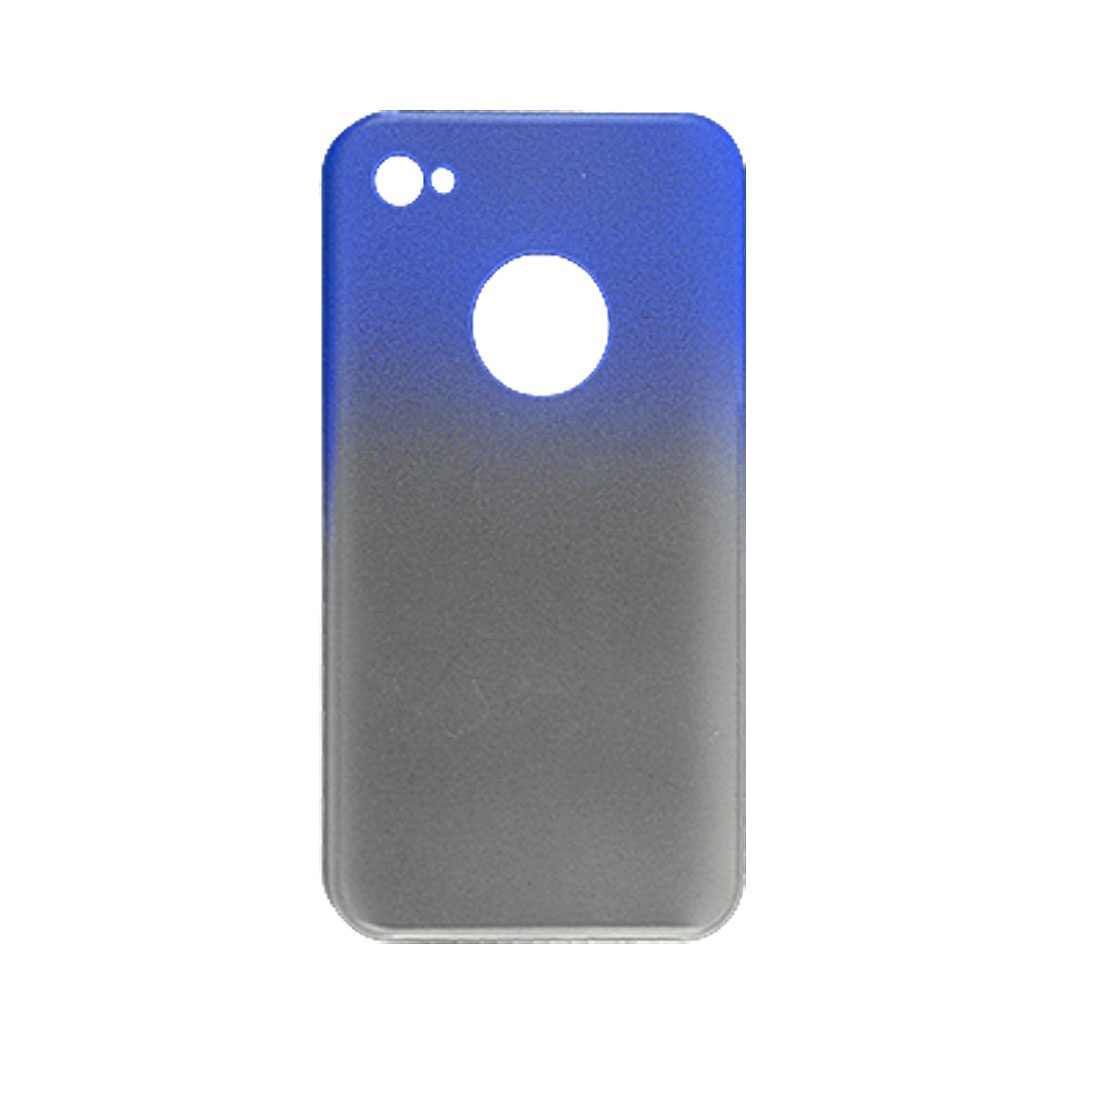 Gradient Color Rubberized Hard Plastic Shell Case for Apple iPhone 4 4G